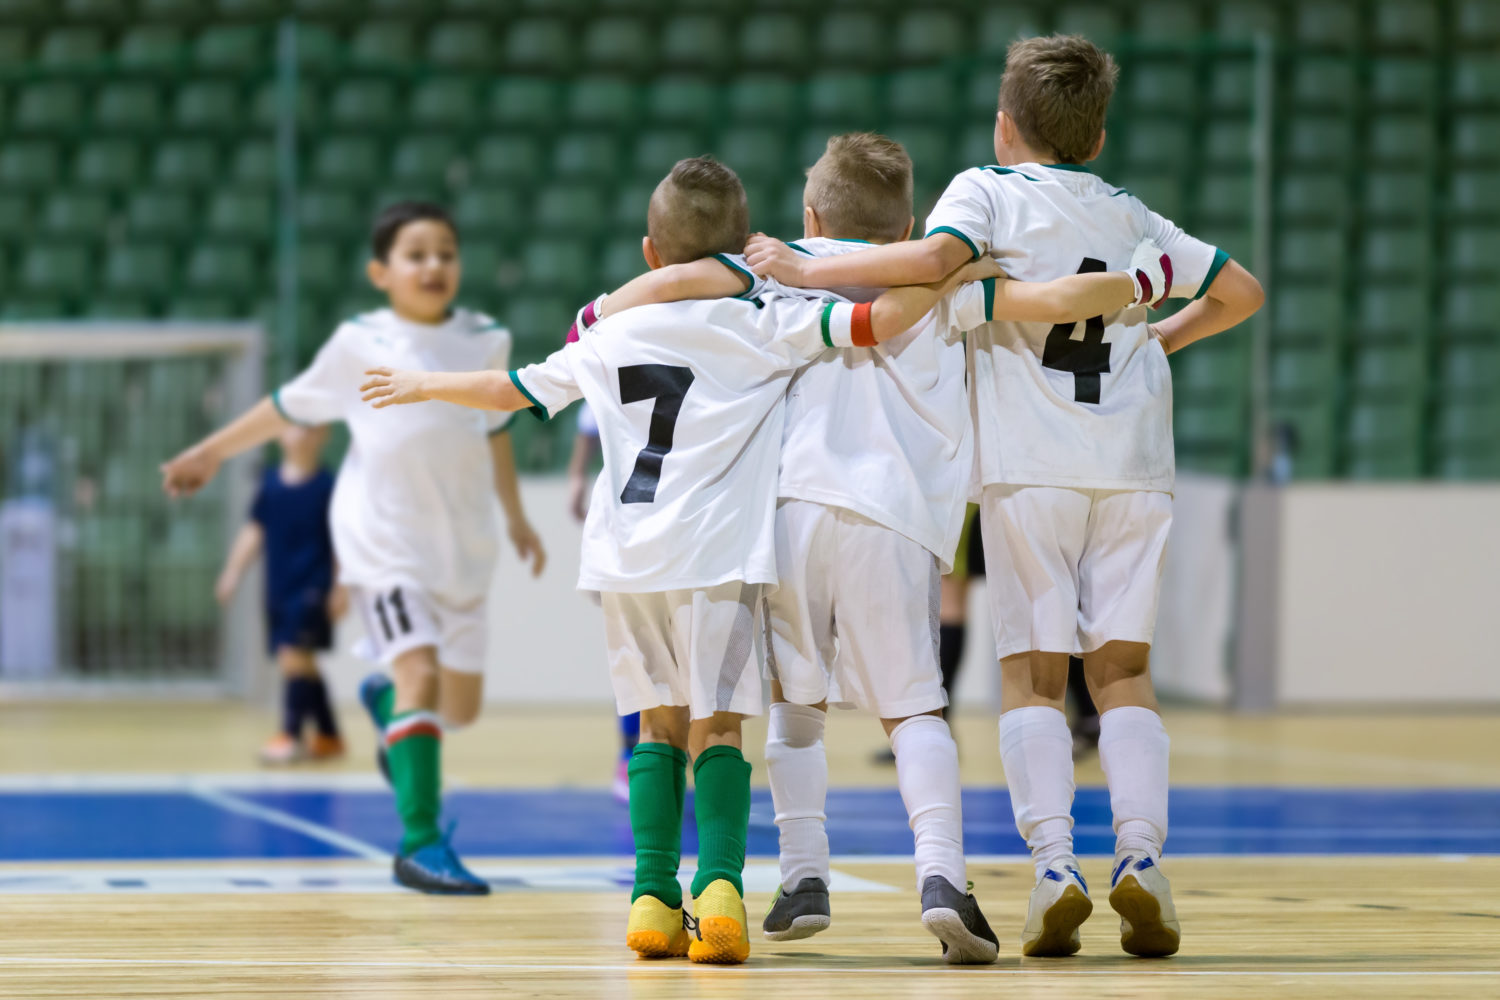 Indoor football soccer match for children. Happy kids together after winning futsal game. Chldren celebrate sport victory. Youth sport triumph